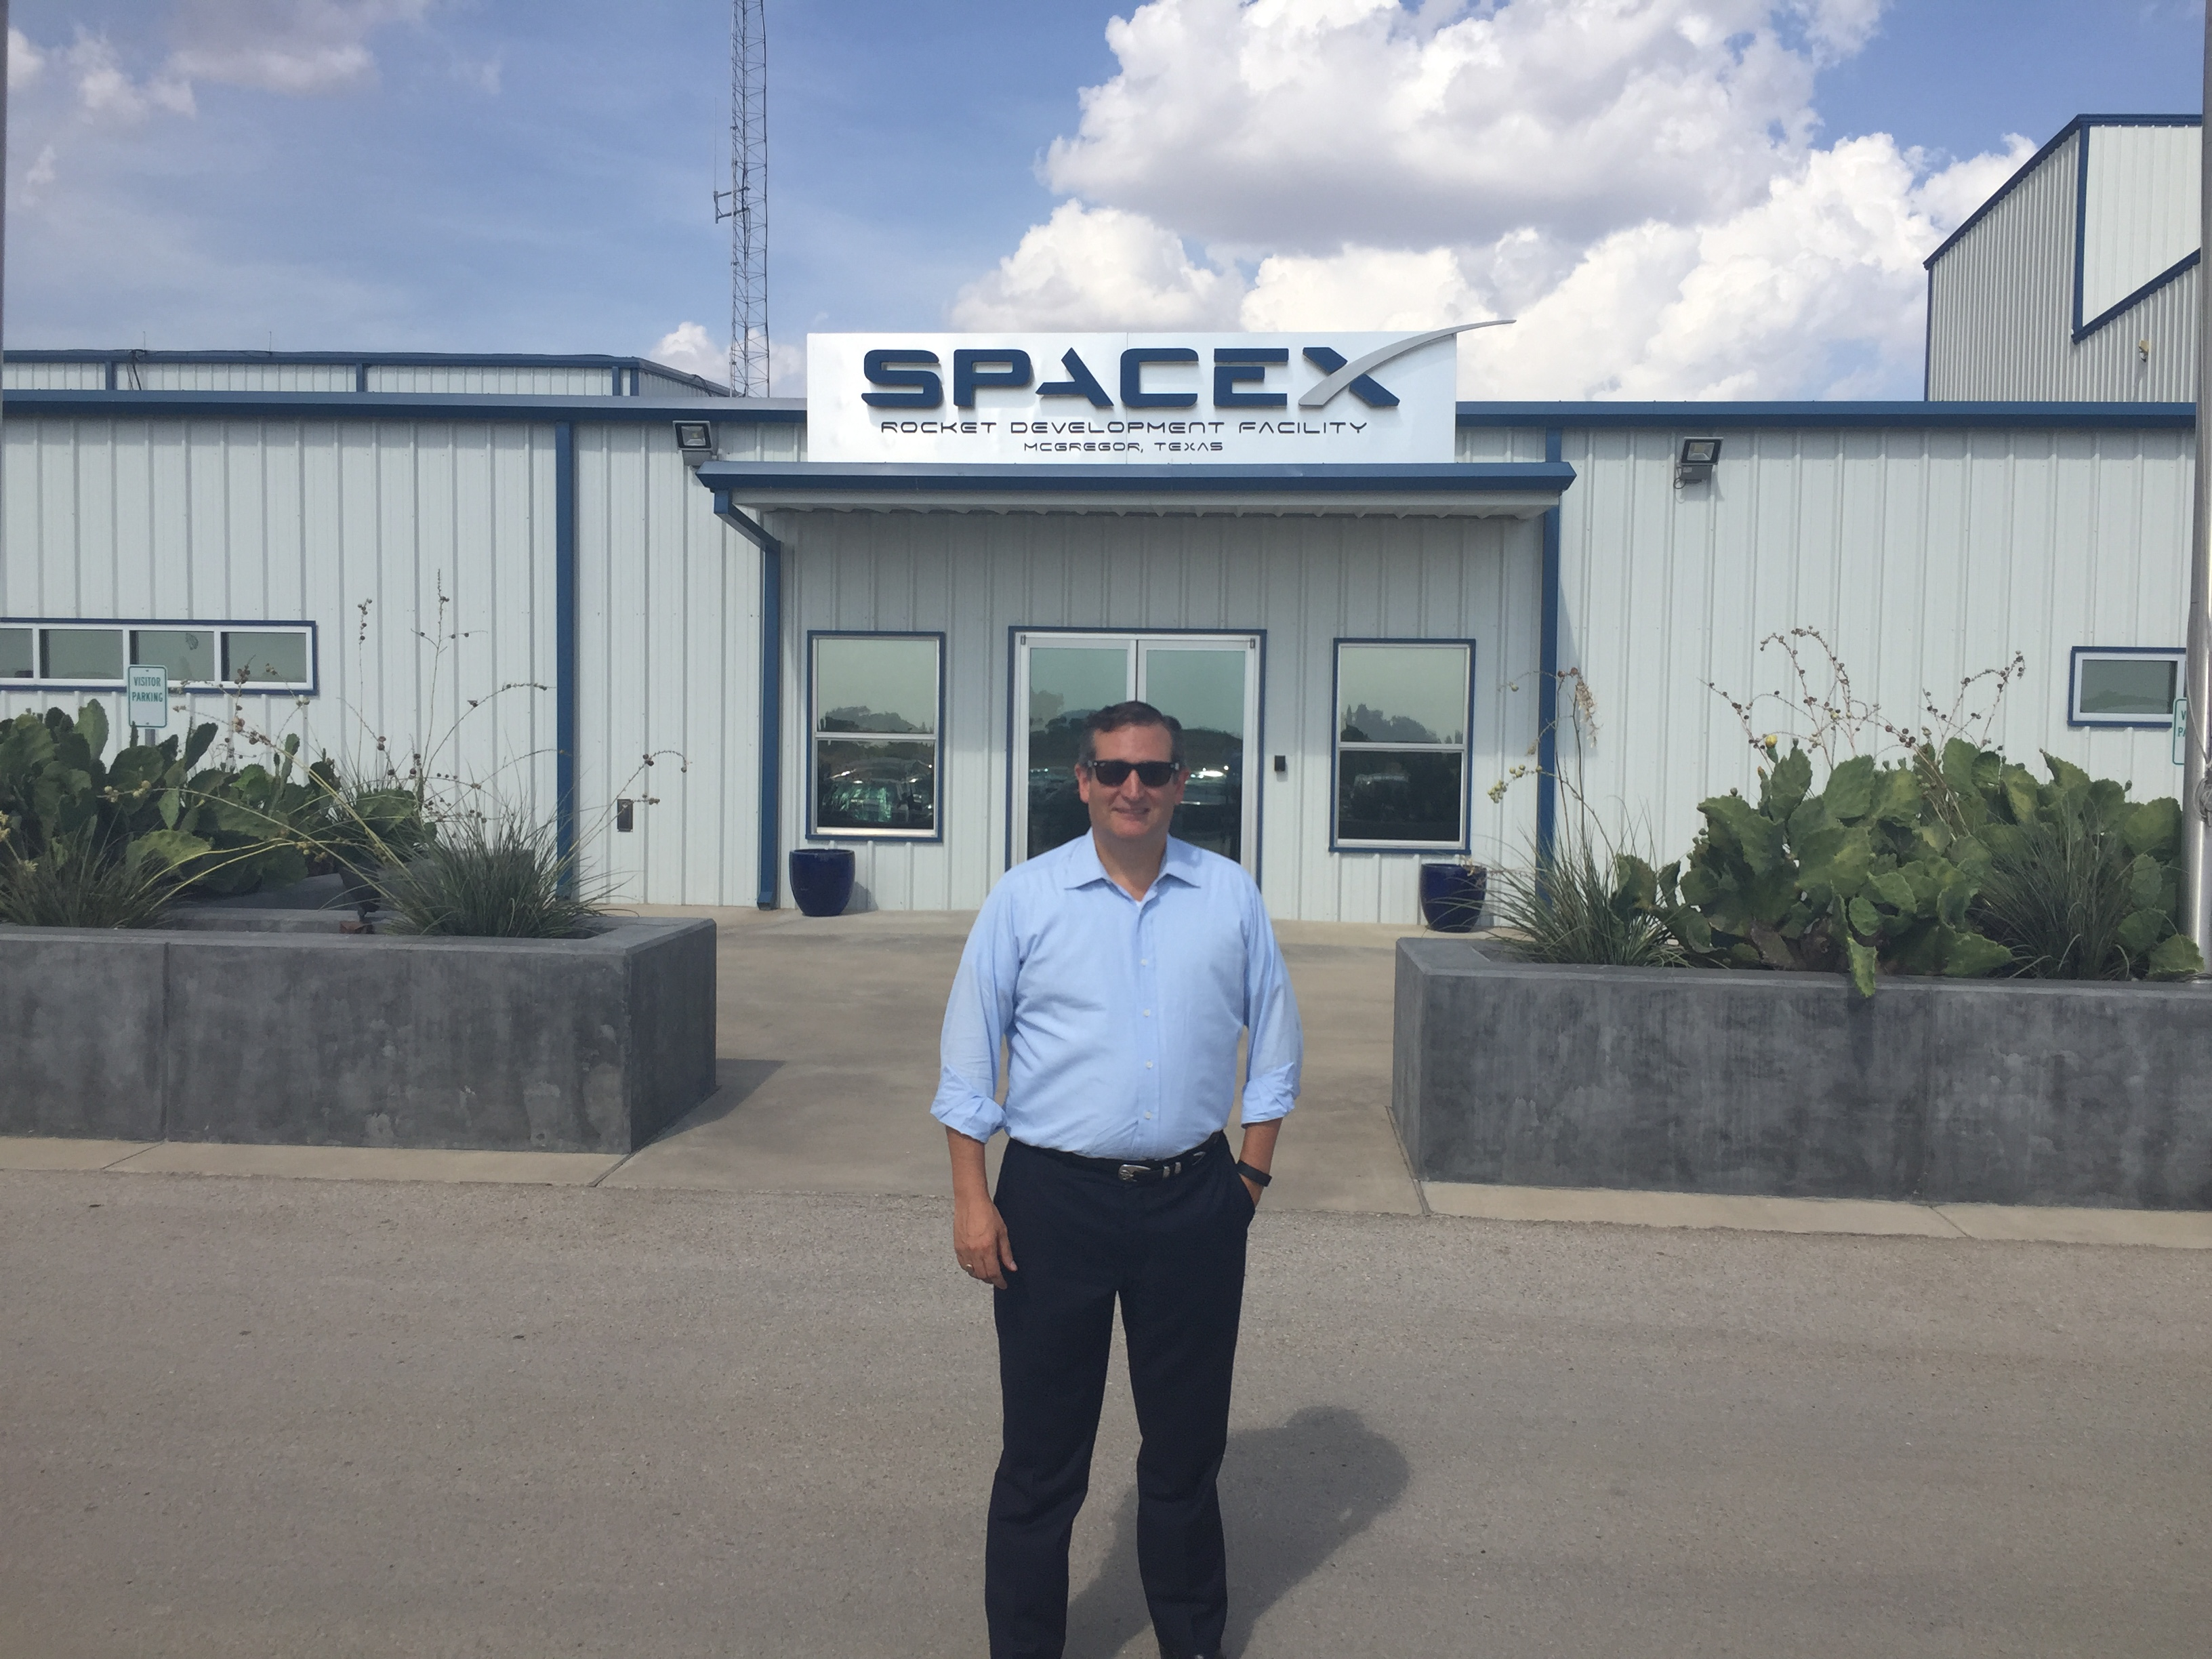 spacex texas office - photo #24